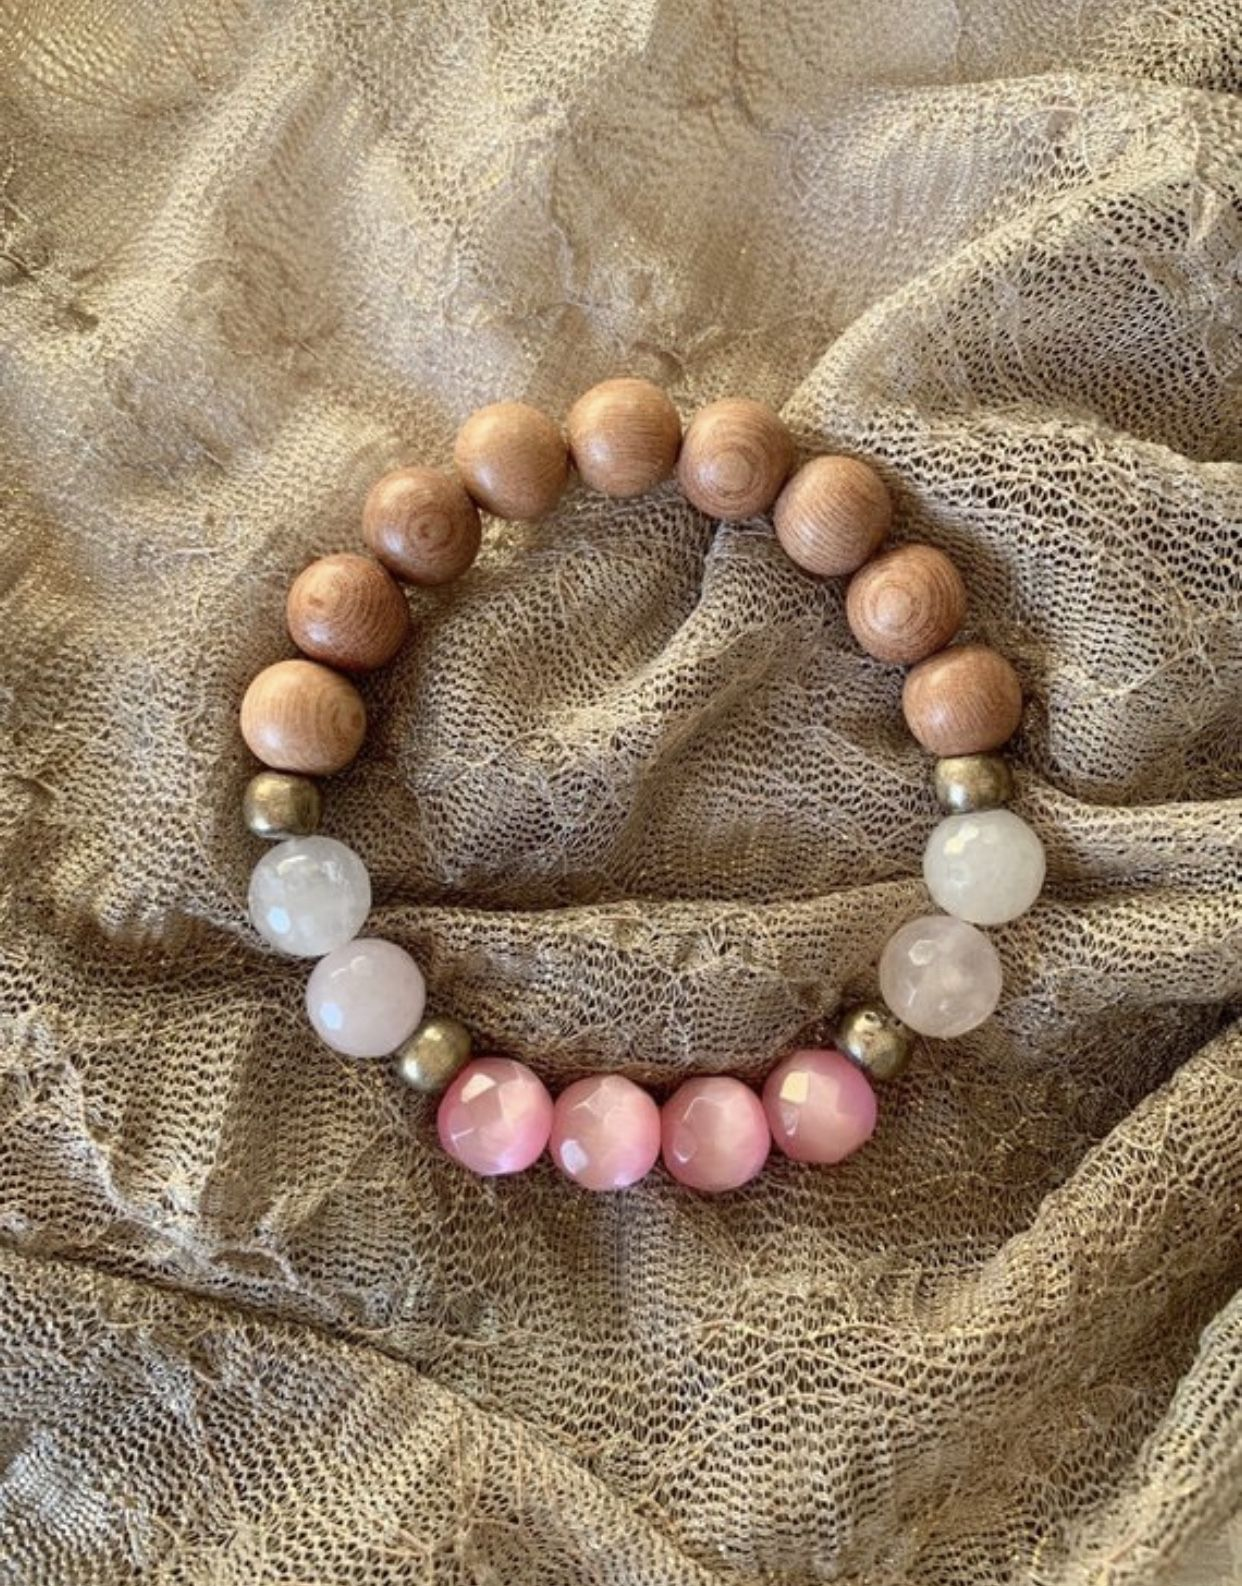 Just add Essential Oil to the wood beads and enjoy the